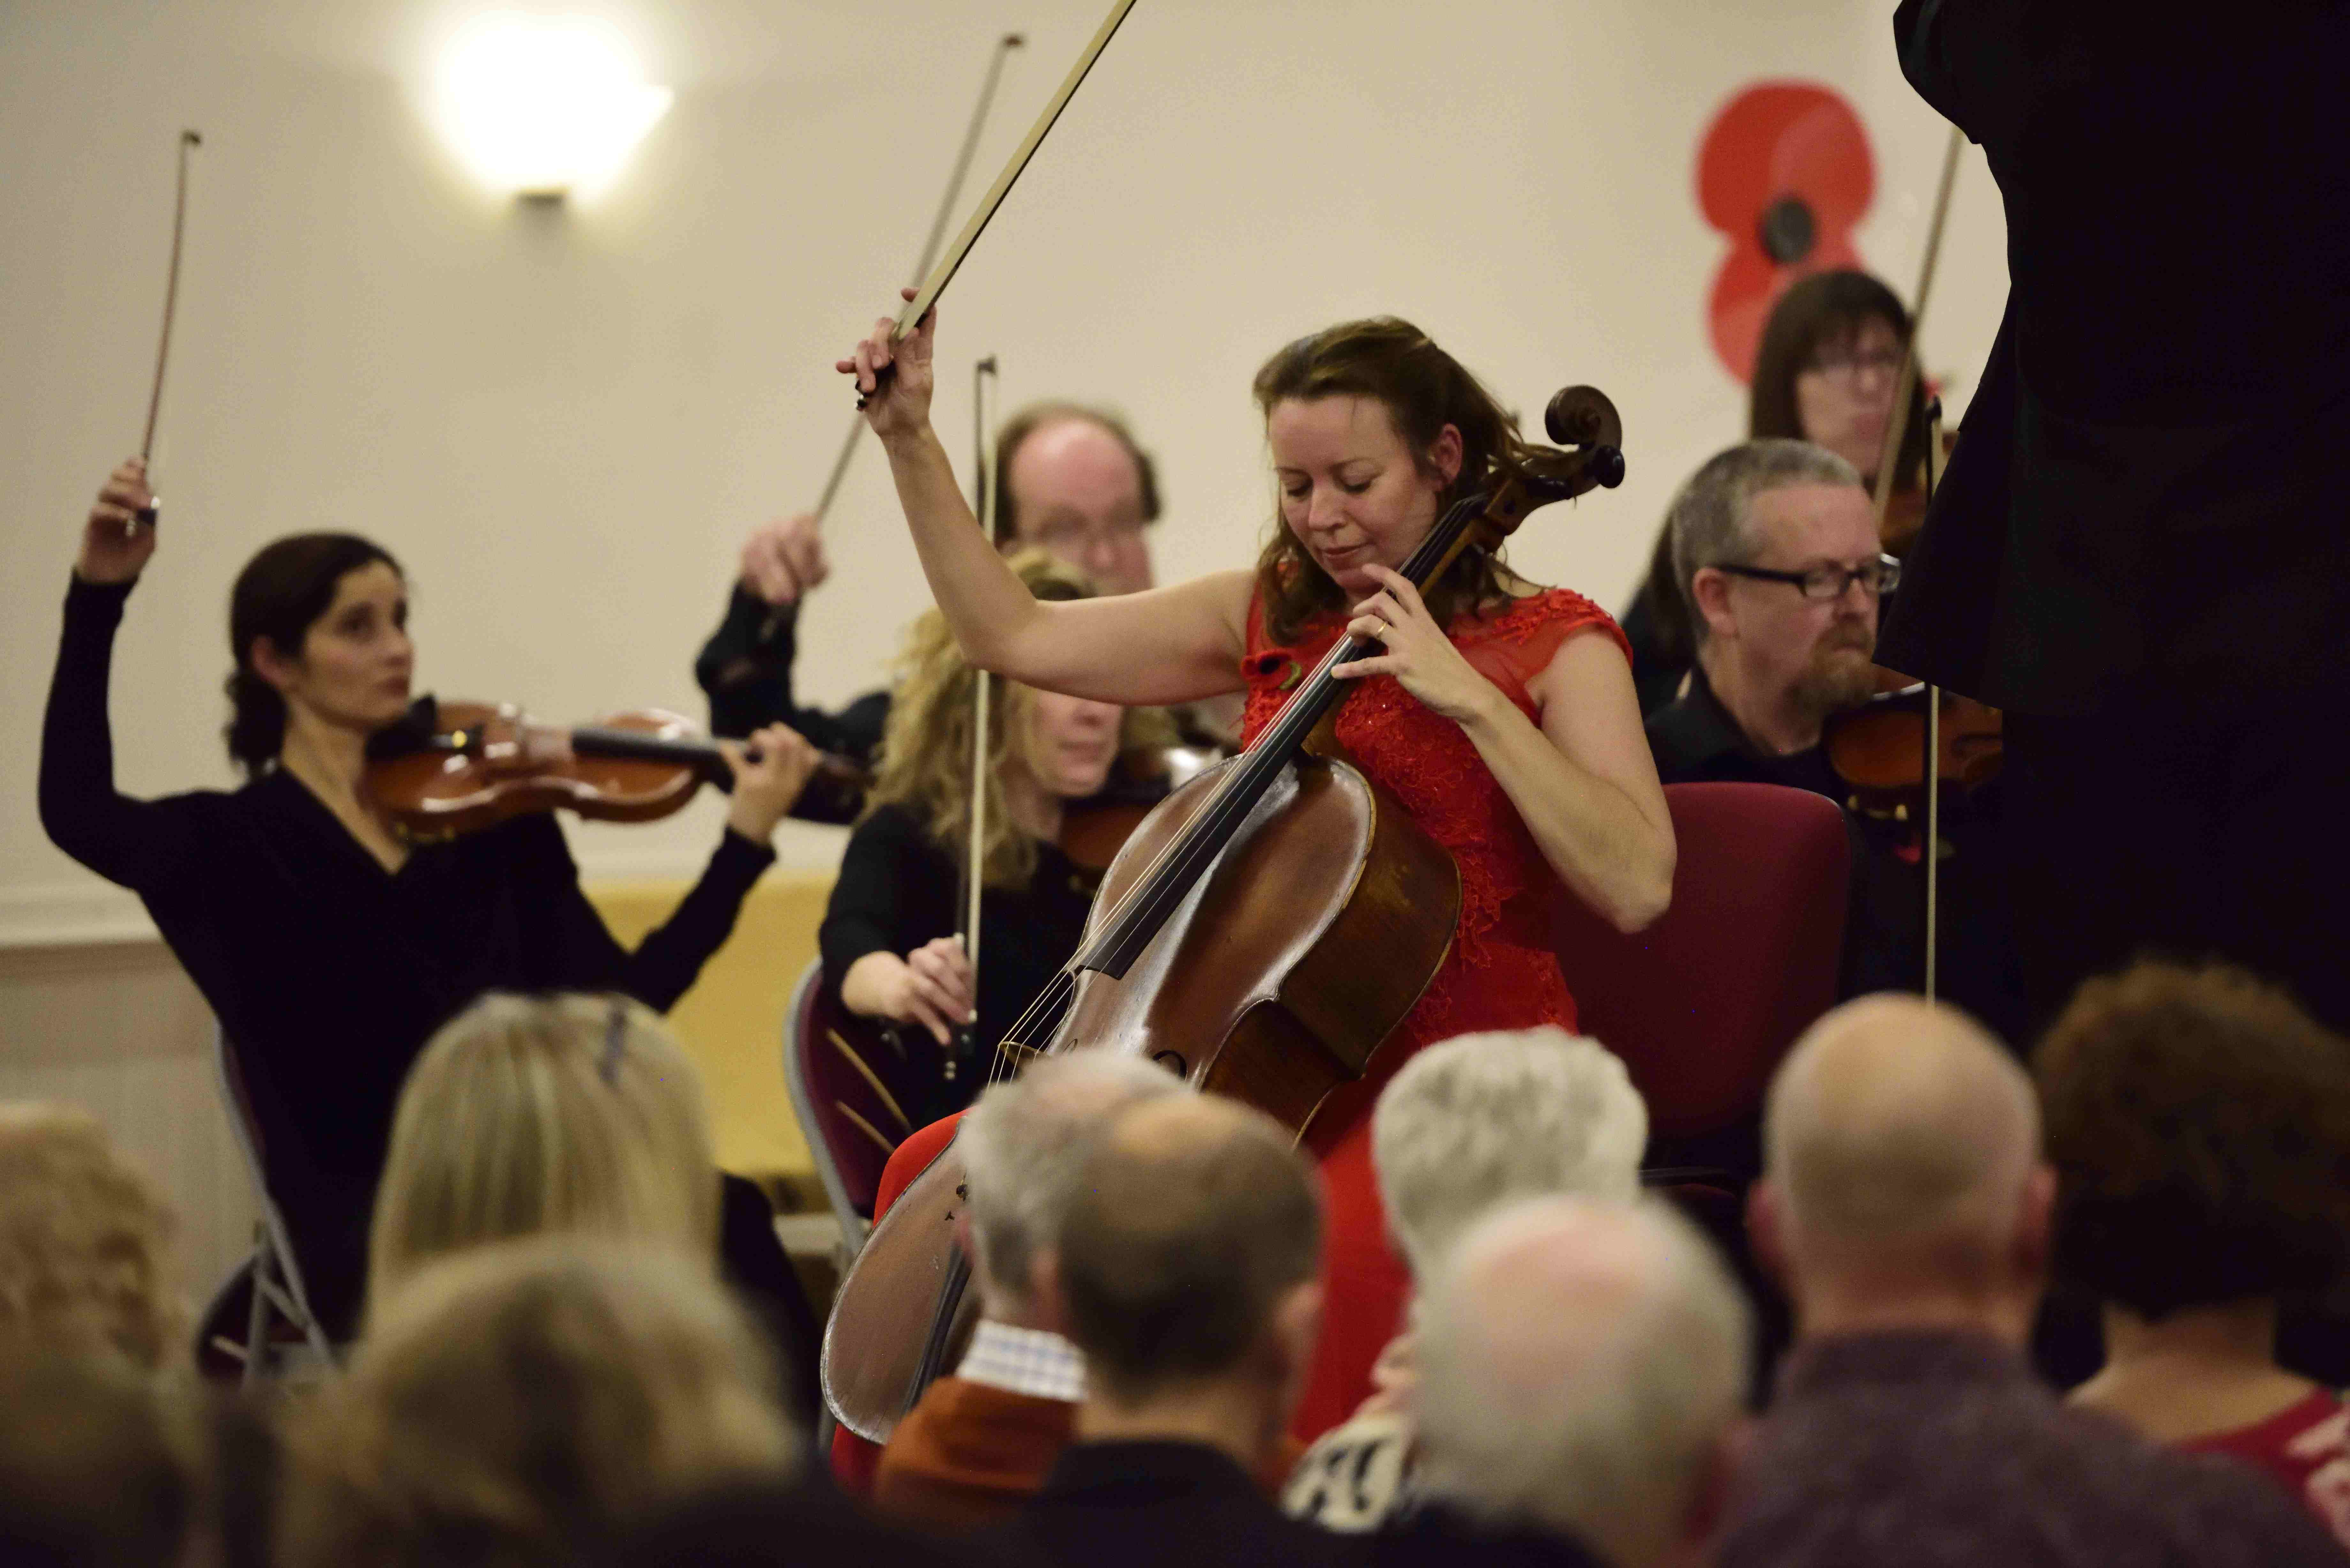 Nicola Tait Baxter Performs Elgar's Cello Concerto with Chorleywood Orchestra